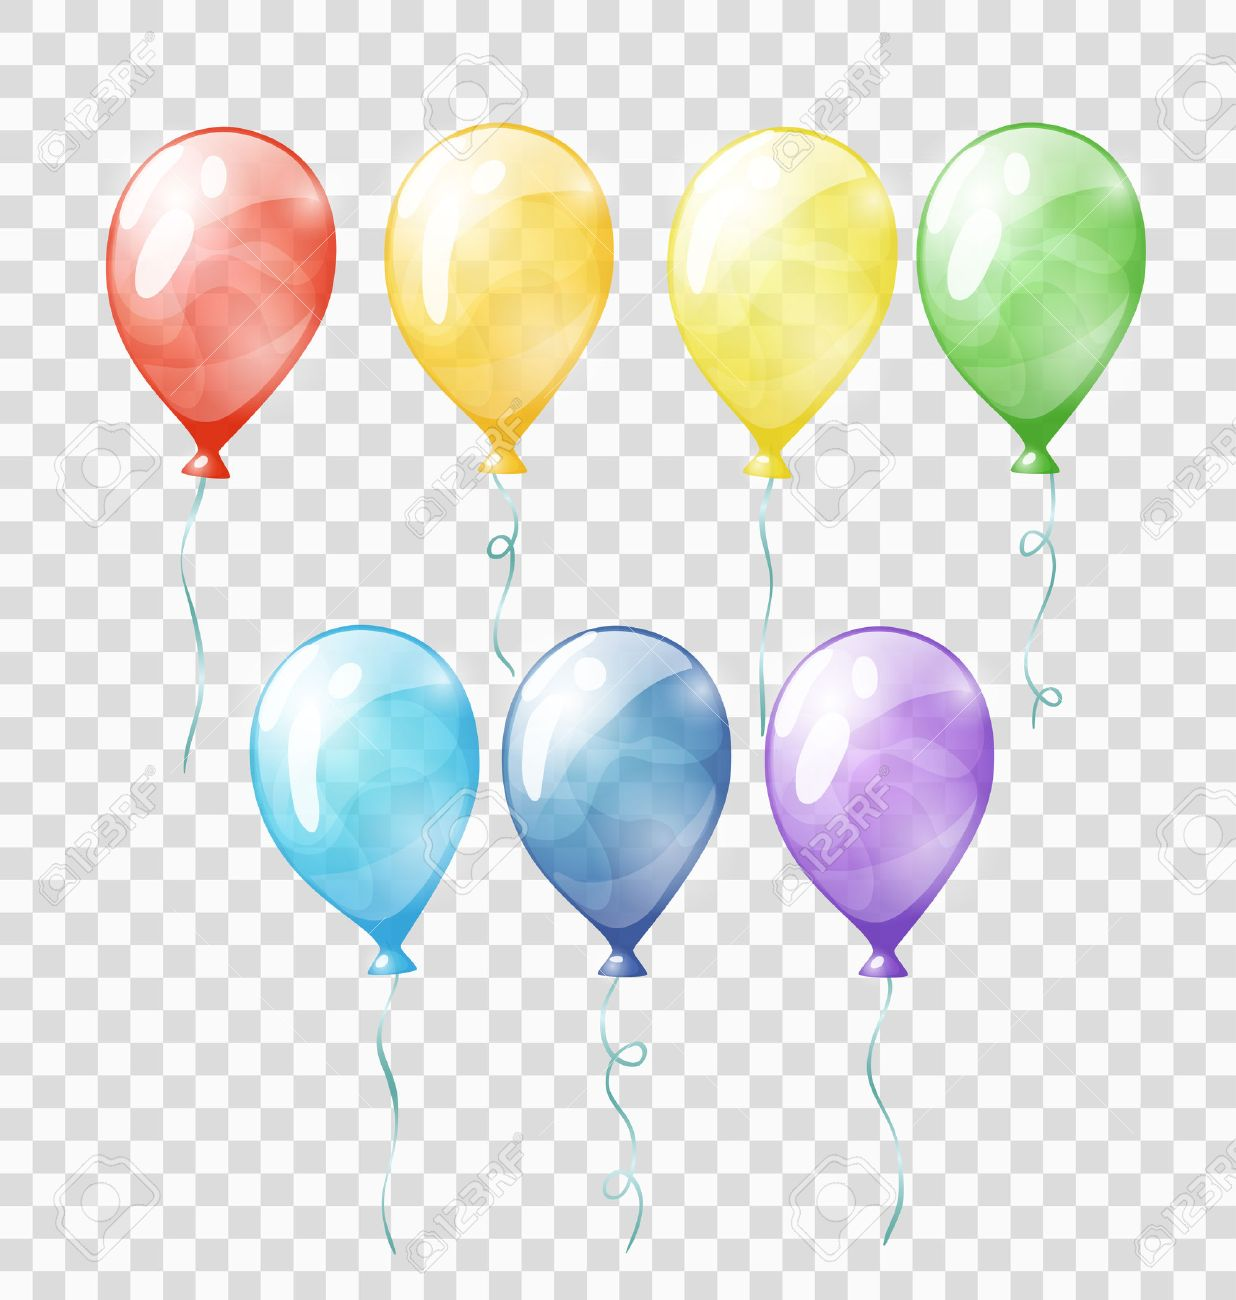 Set of colored transparent balloons on the chequered background - 52028841